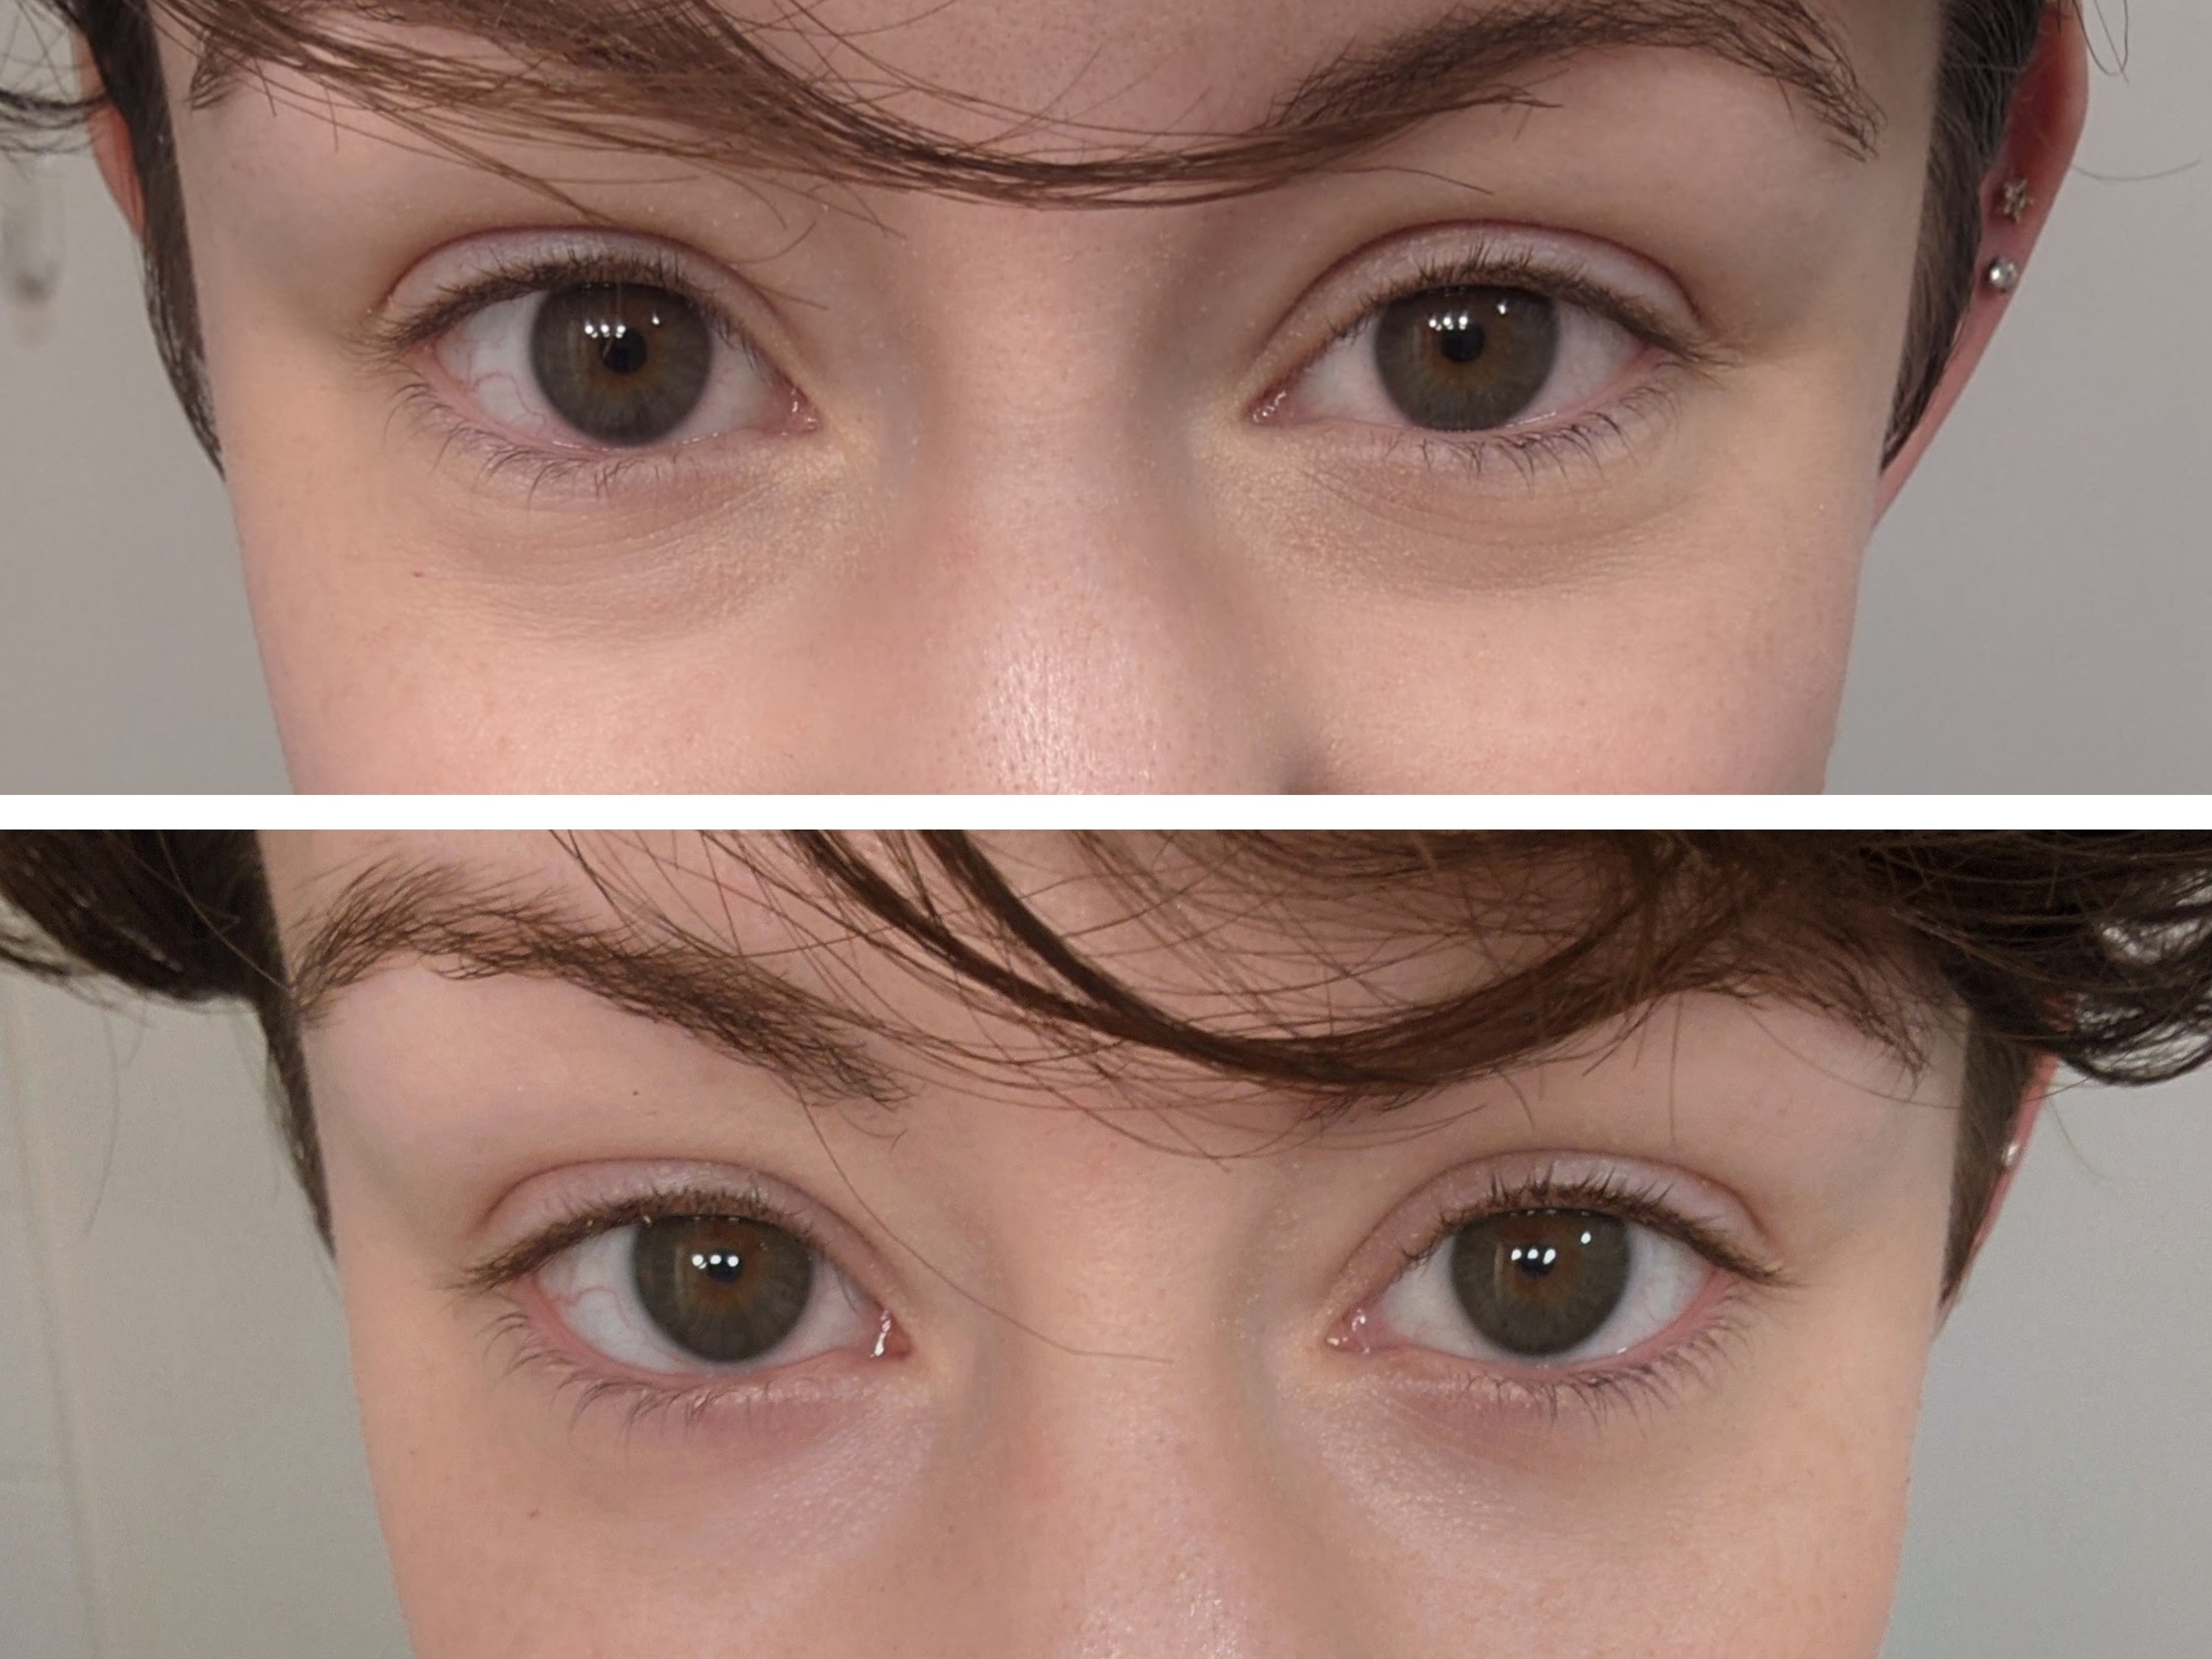 A horizontally split image with the top showing a close-up of eyes with dark circle and the photo below showing the same eyes with the appearance of the dark circles reduced